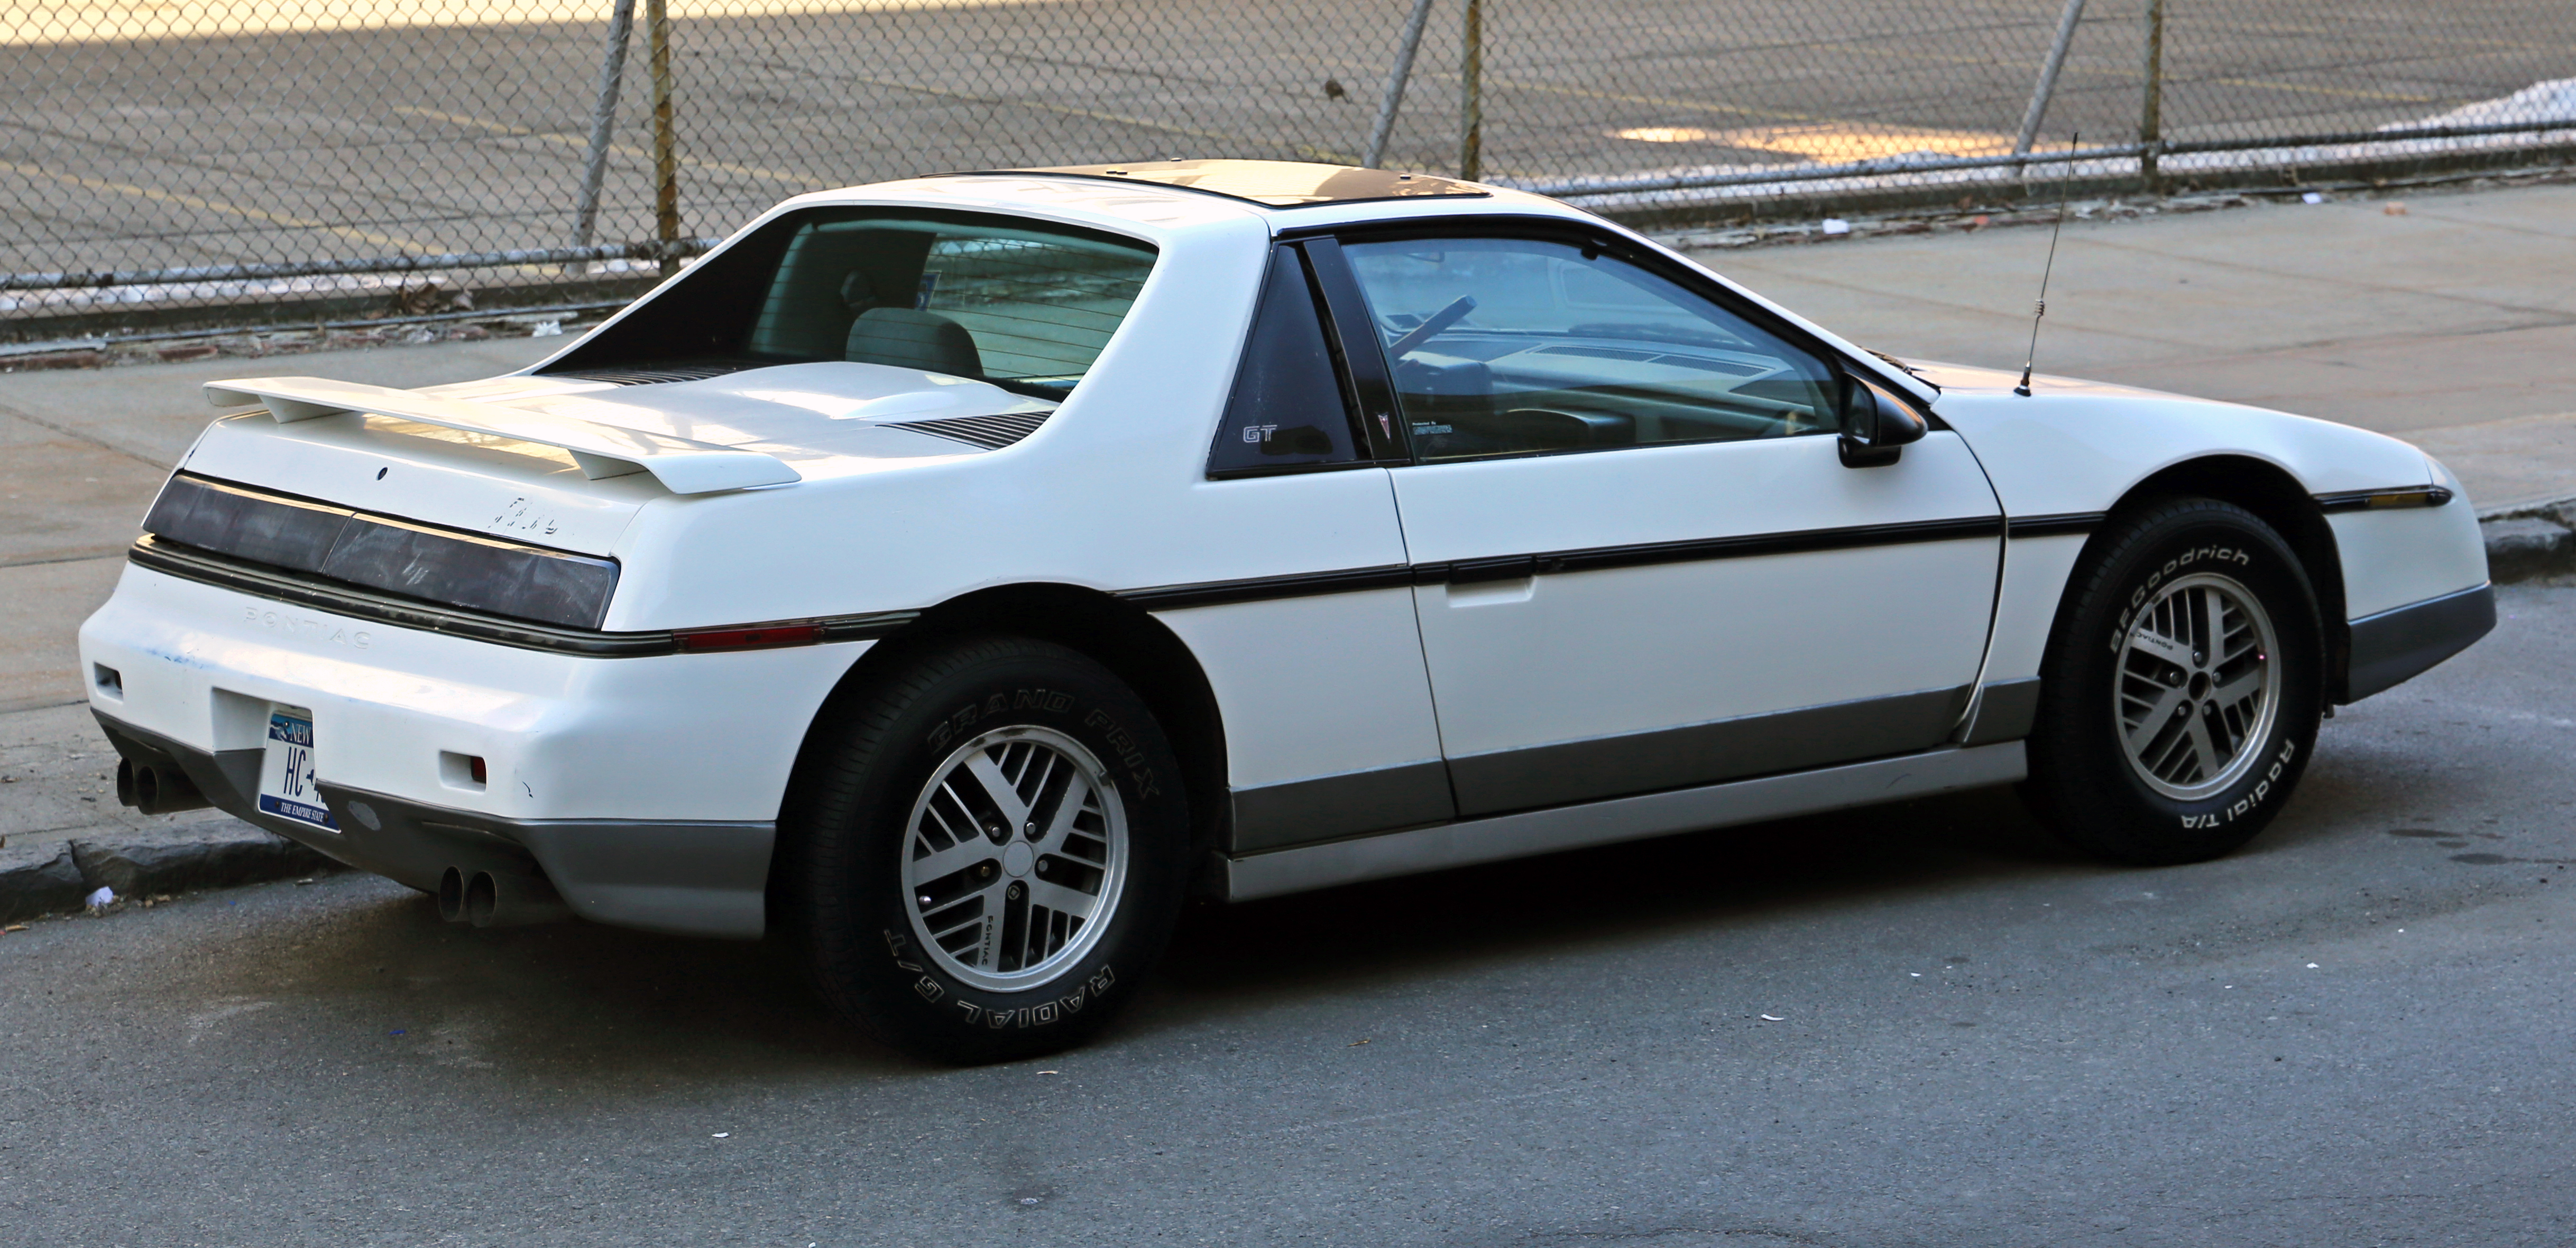 1985 pontiac fiero photos  informations  articles